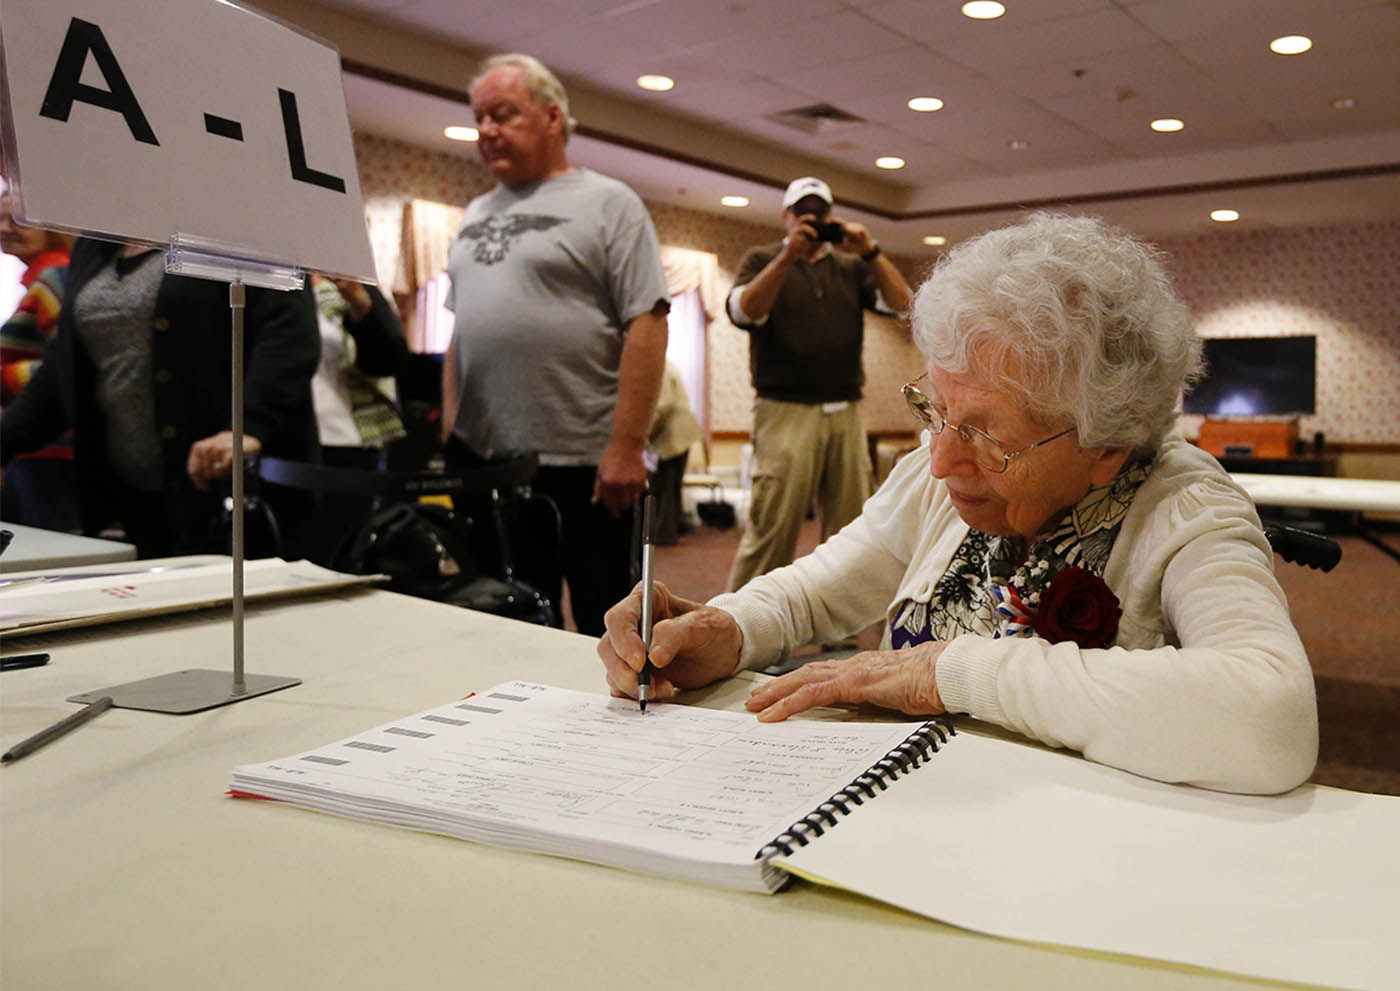 Helen Allen, 108 years old, was born before women had the right to vote, signs in before casting her ballot in this years election at Elderwood in Wheatfield with some assistance from Excecutive Director Shannon Cayea Tuesday, Nov. 8, 2016. Allen remembers when her mother voted for the first time. (Mark Mulville/Buffalo News)